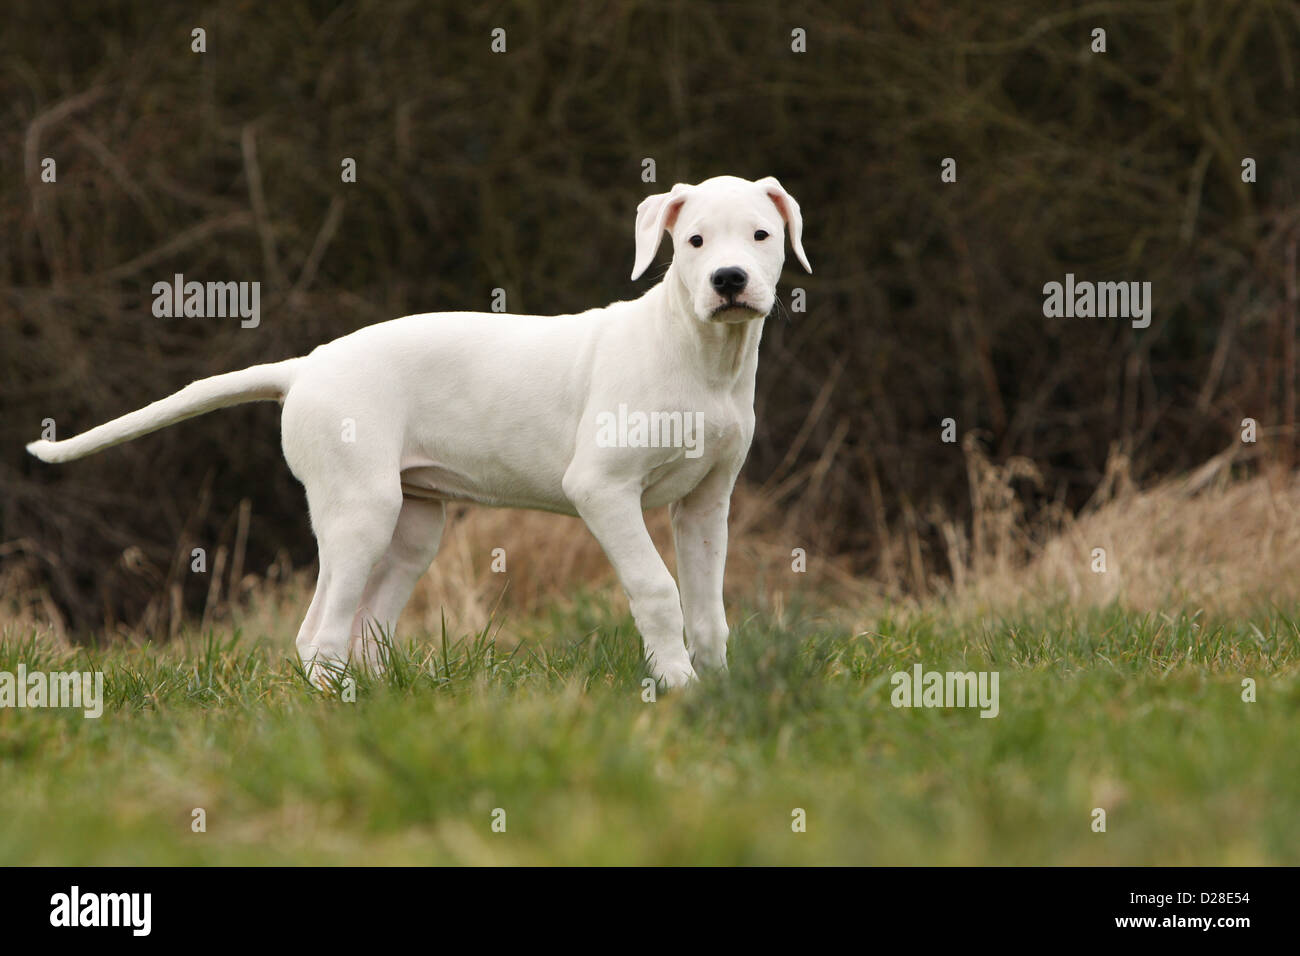 Chien Dogo Argentino / Dogue Argentin (oreilles naturelles) puppy standing Photo Stock